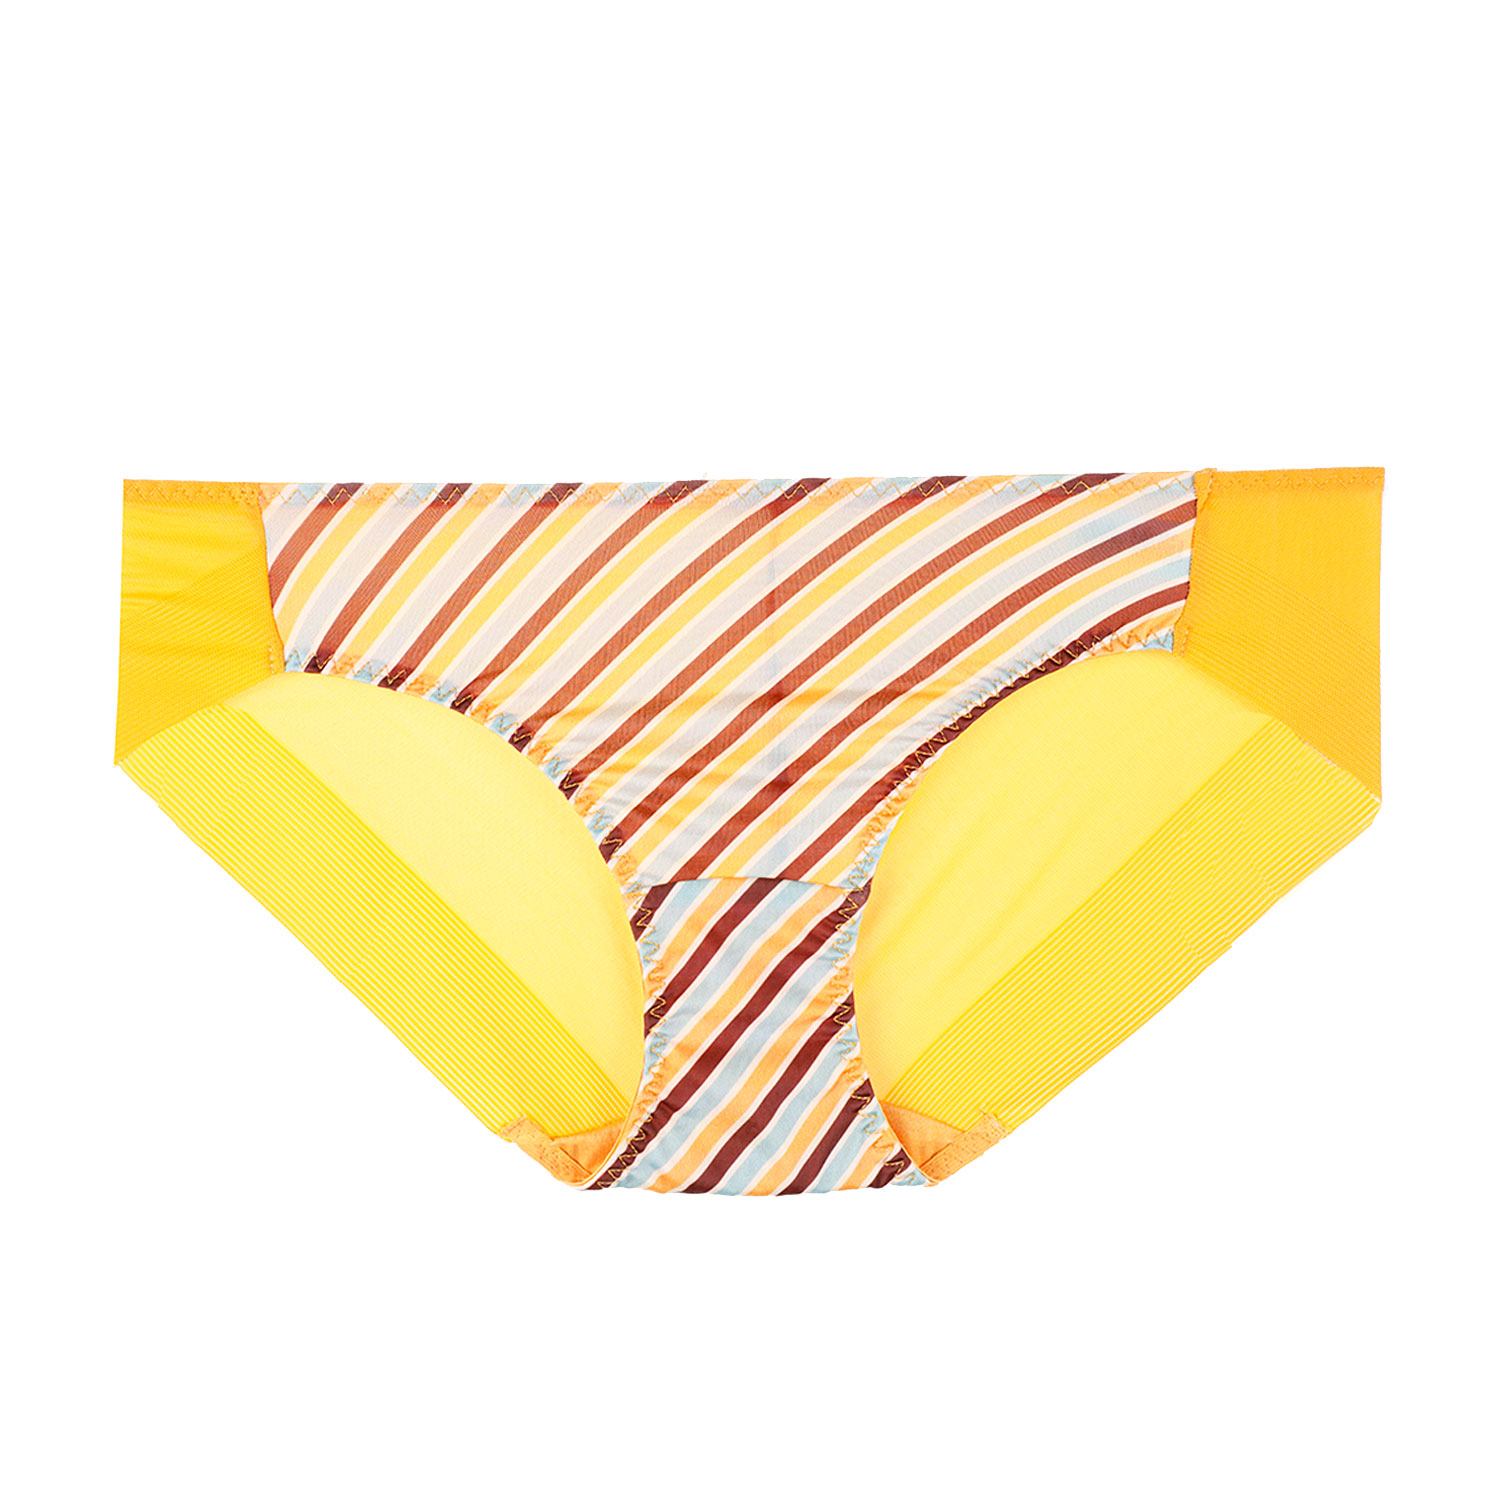 Retro Stripe hem panties